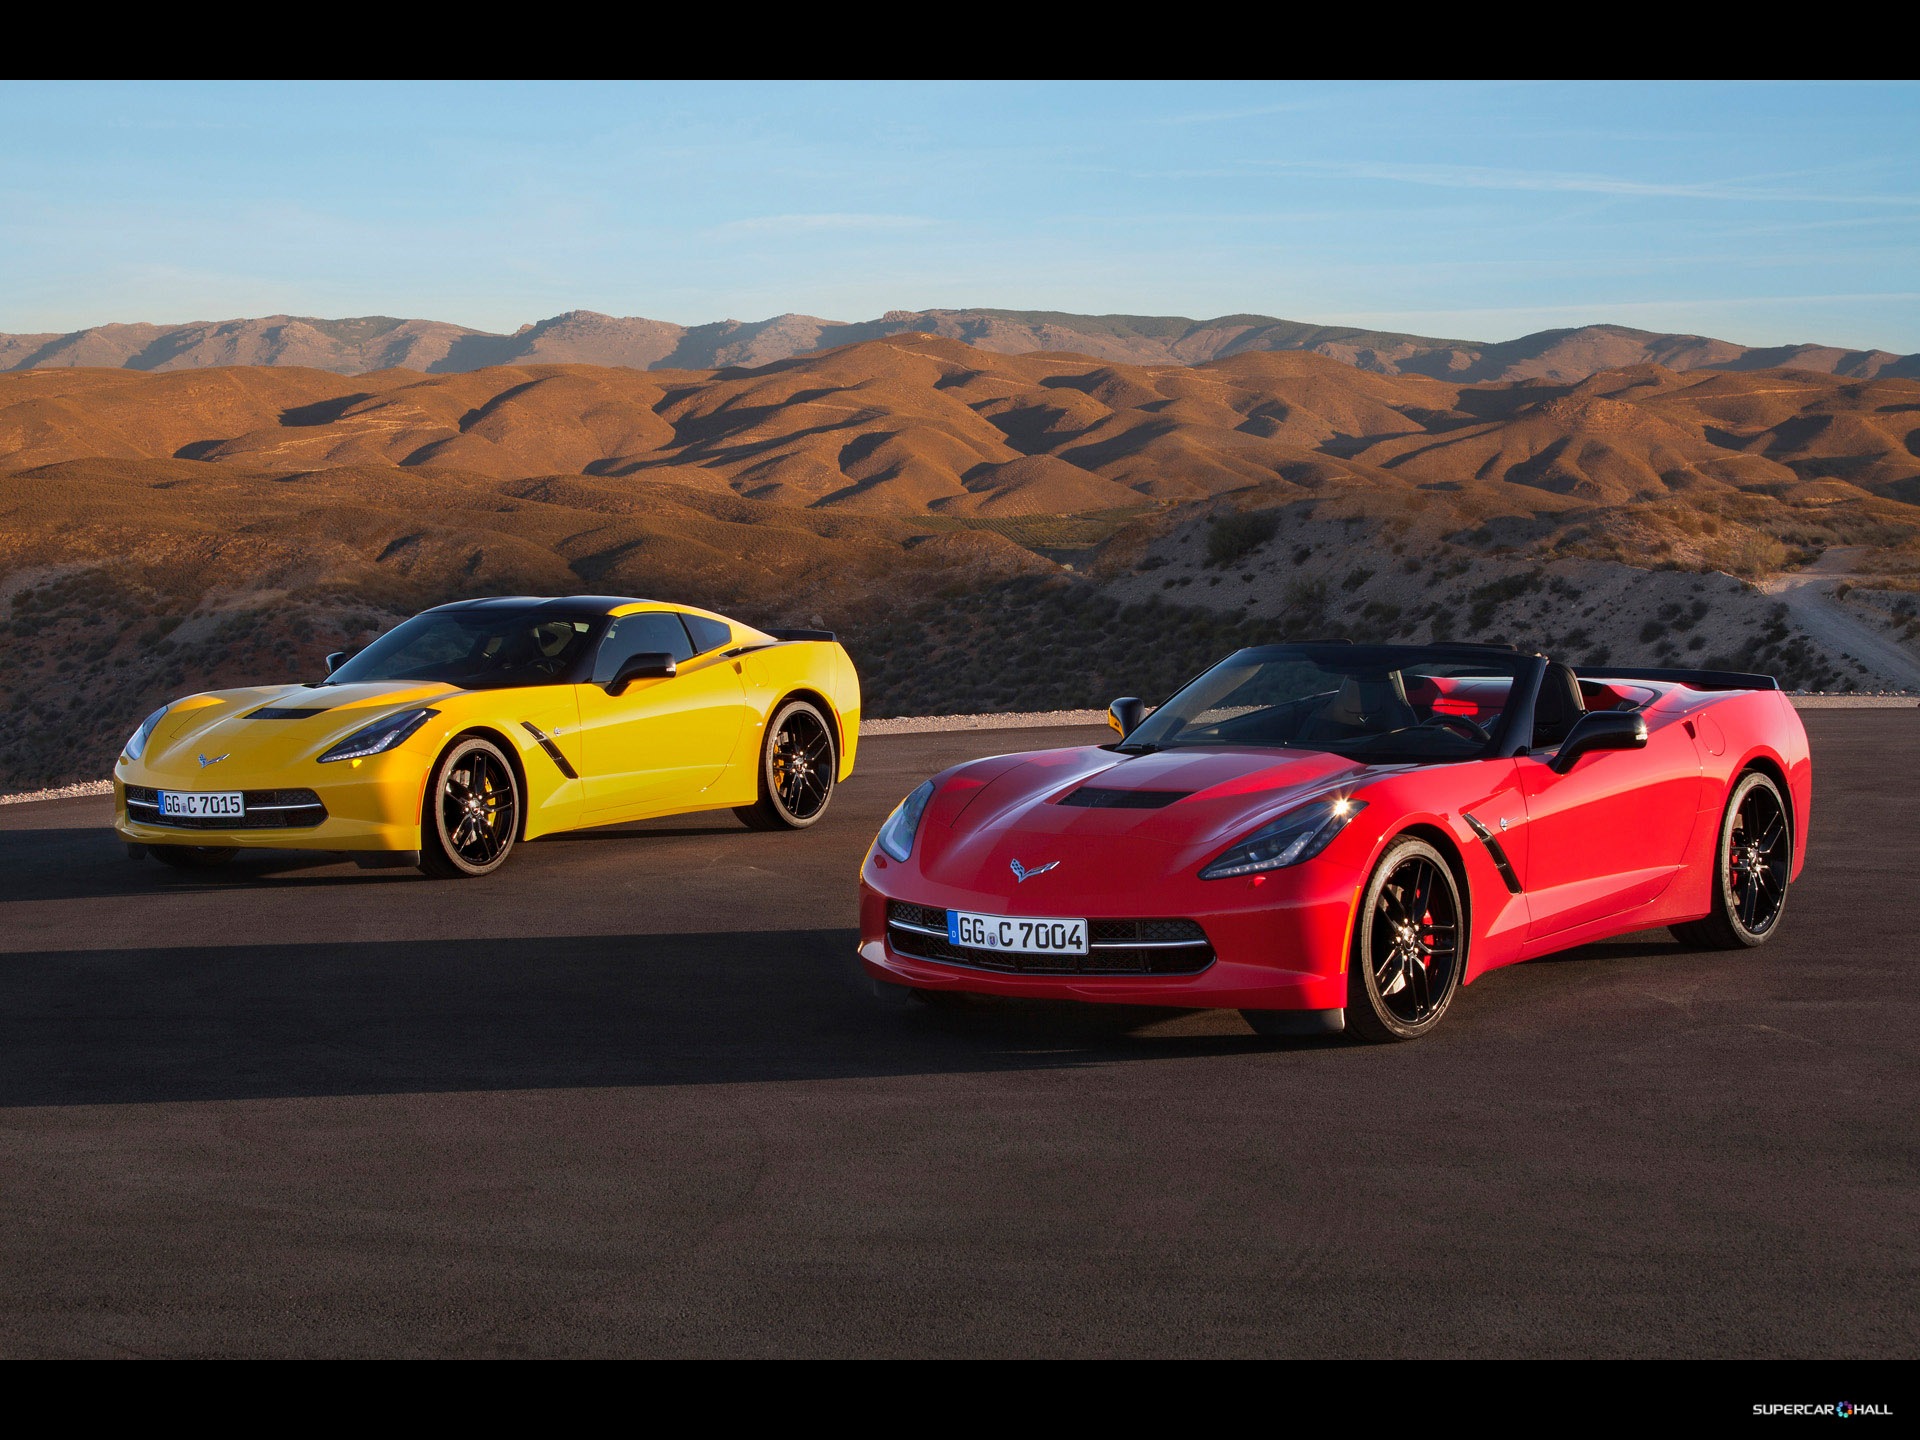 2019 Chevrolet Corvette Stingray EU Version photo - 2